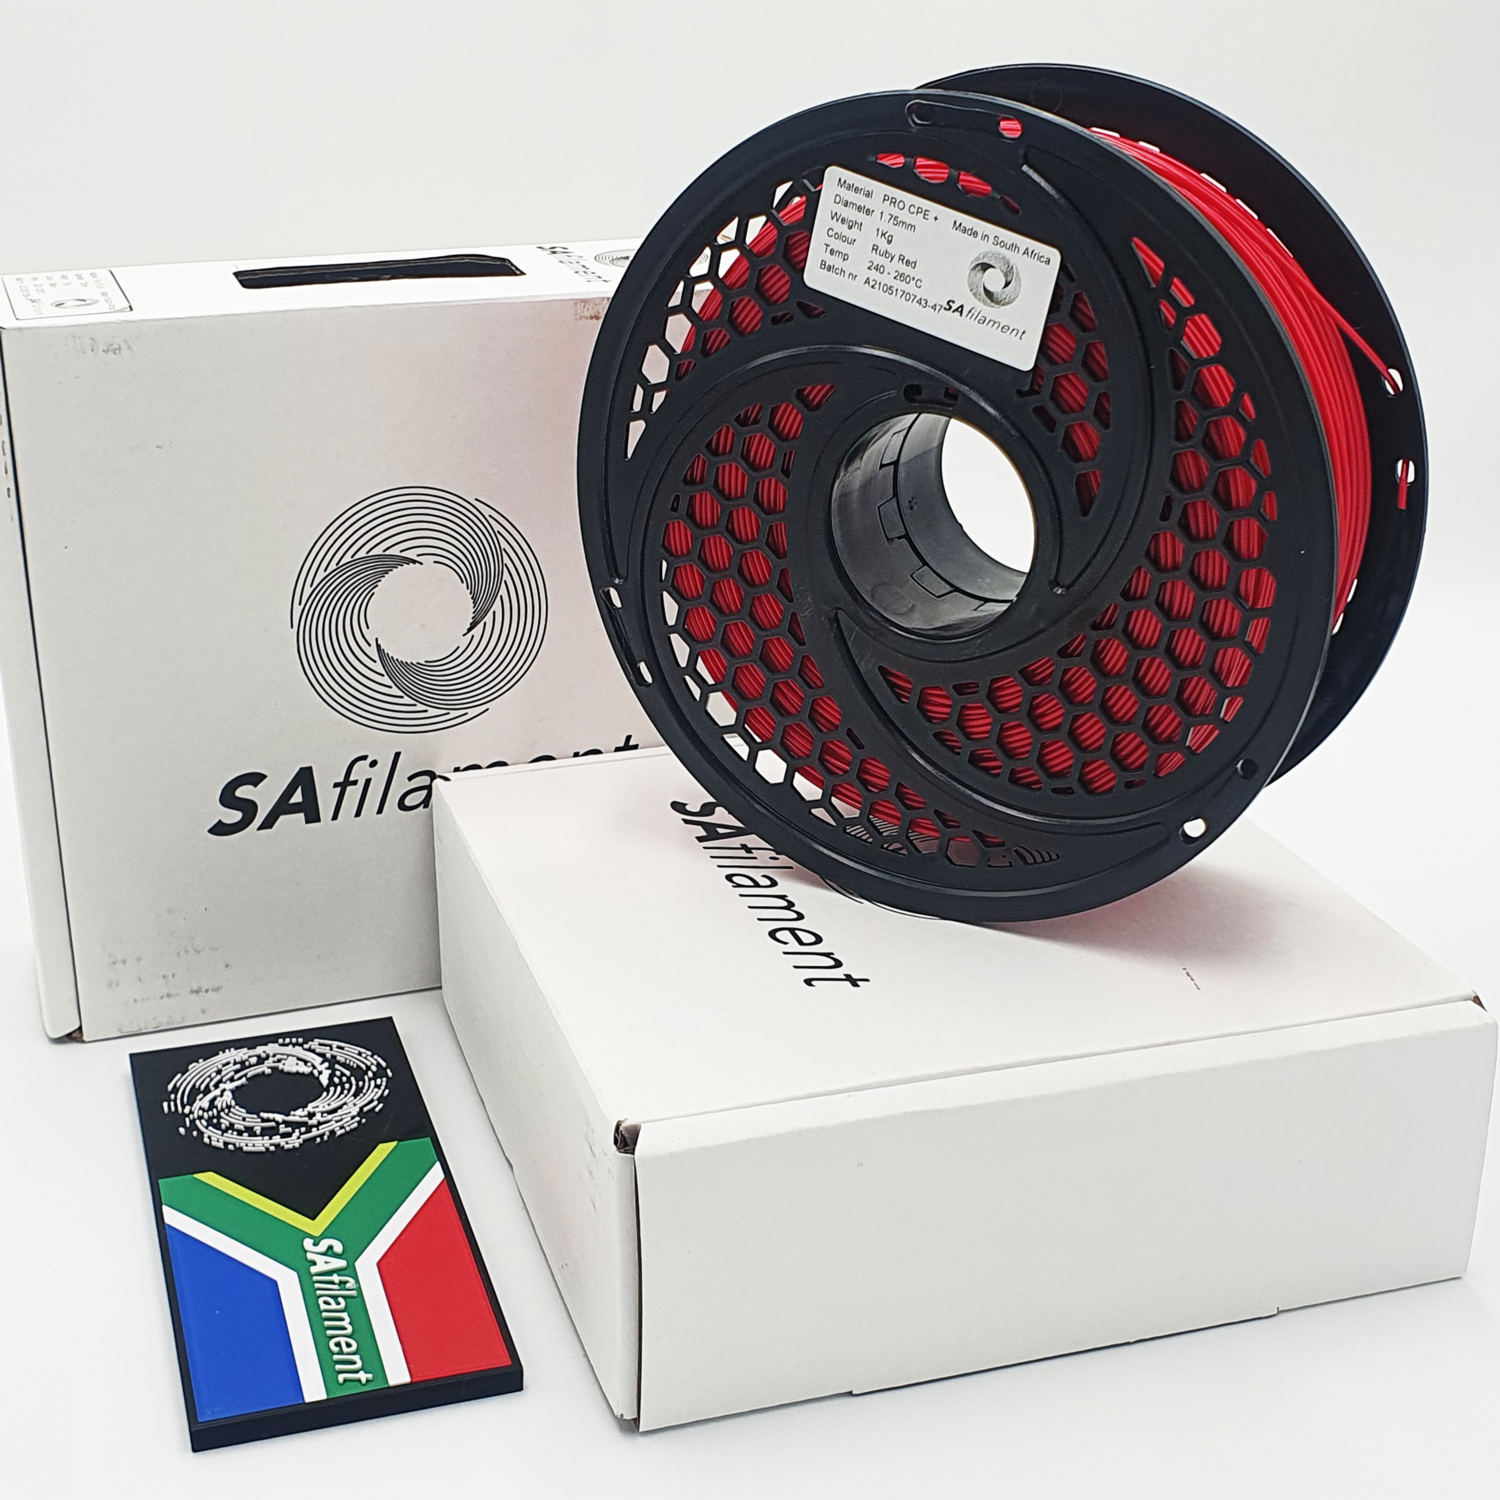 Red Pro CPE+ Filament, 1Kg, 1.75mm by SA Filament